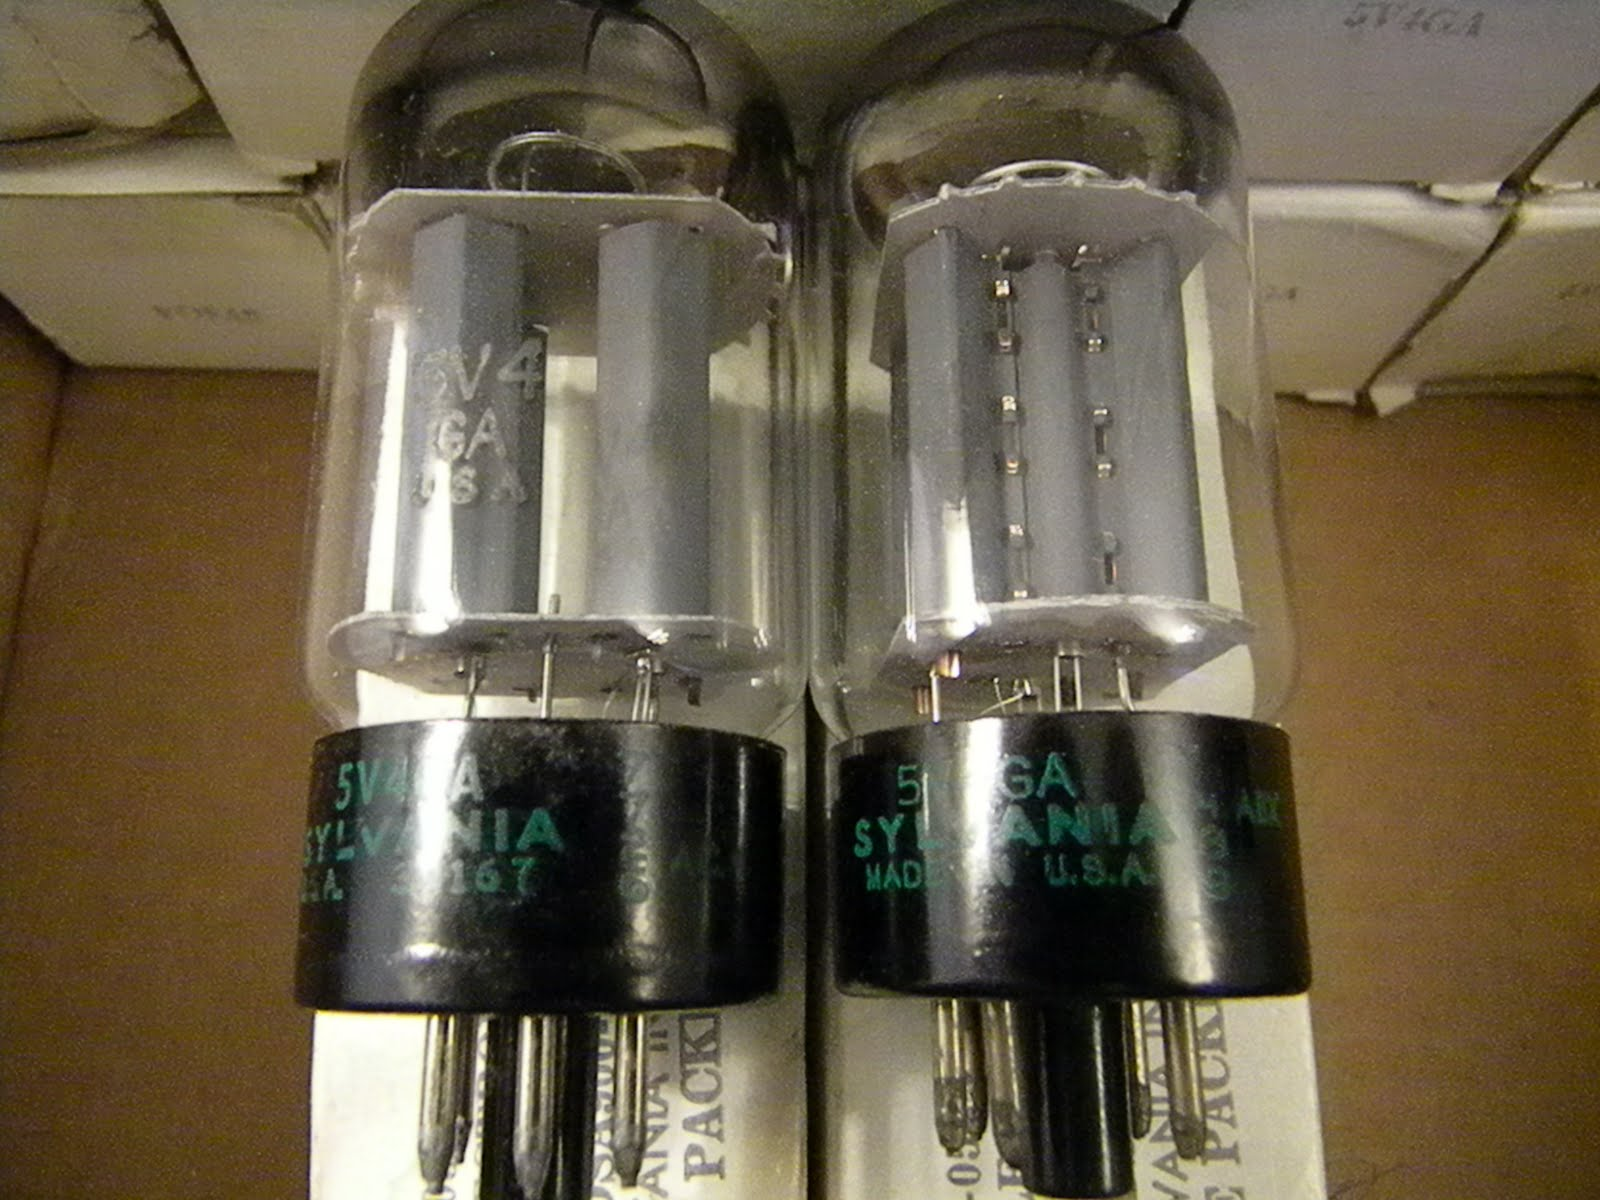 NOS Tube Store: Sylvania 5AR4 / GZ34 Big Bottle-Fat Boy